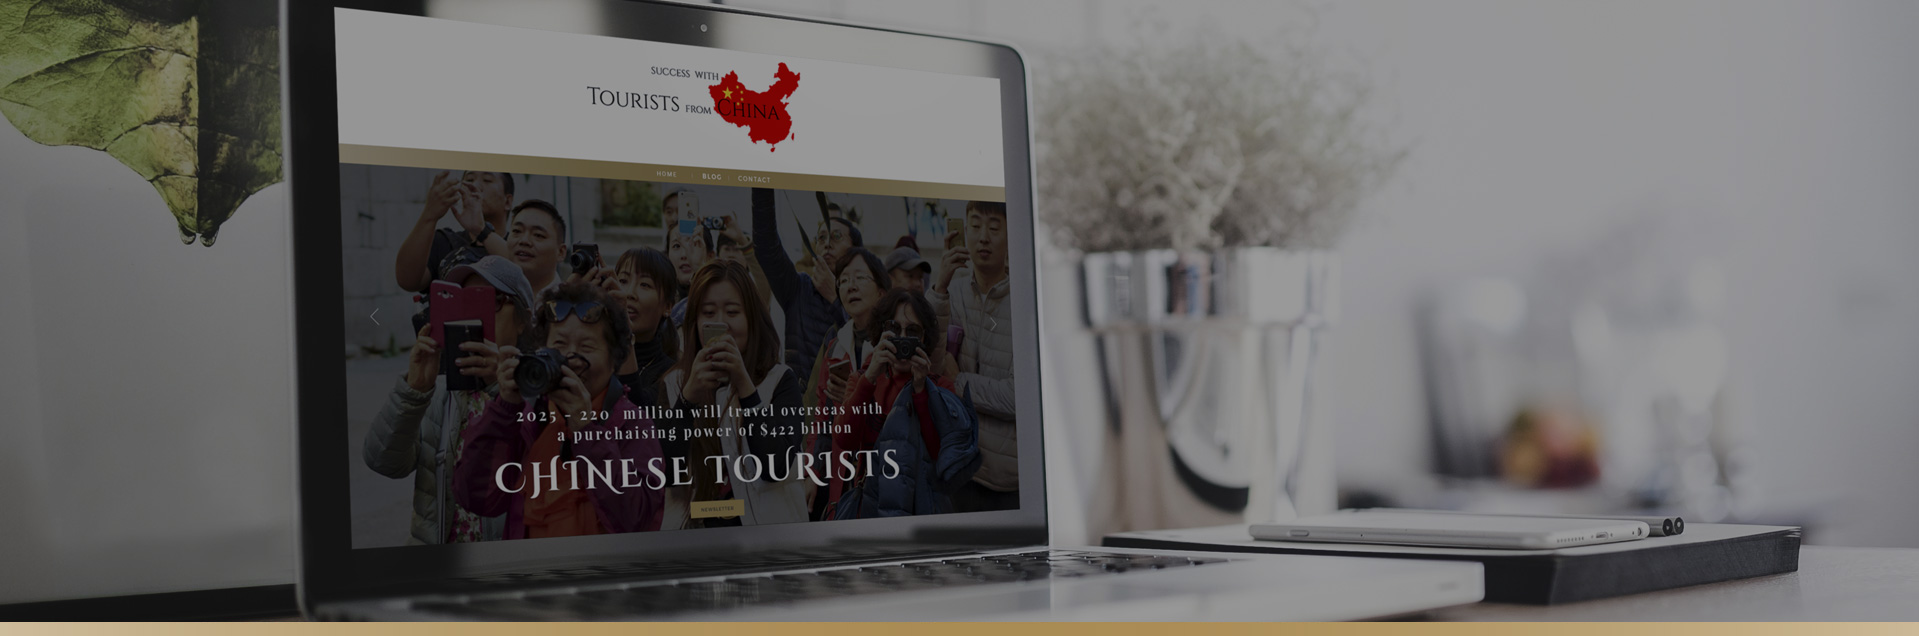 Chinese tourists contact-header-pic-breiter